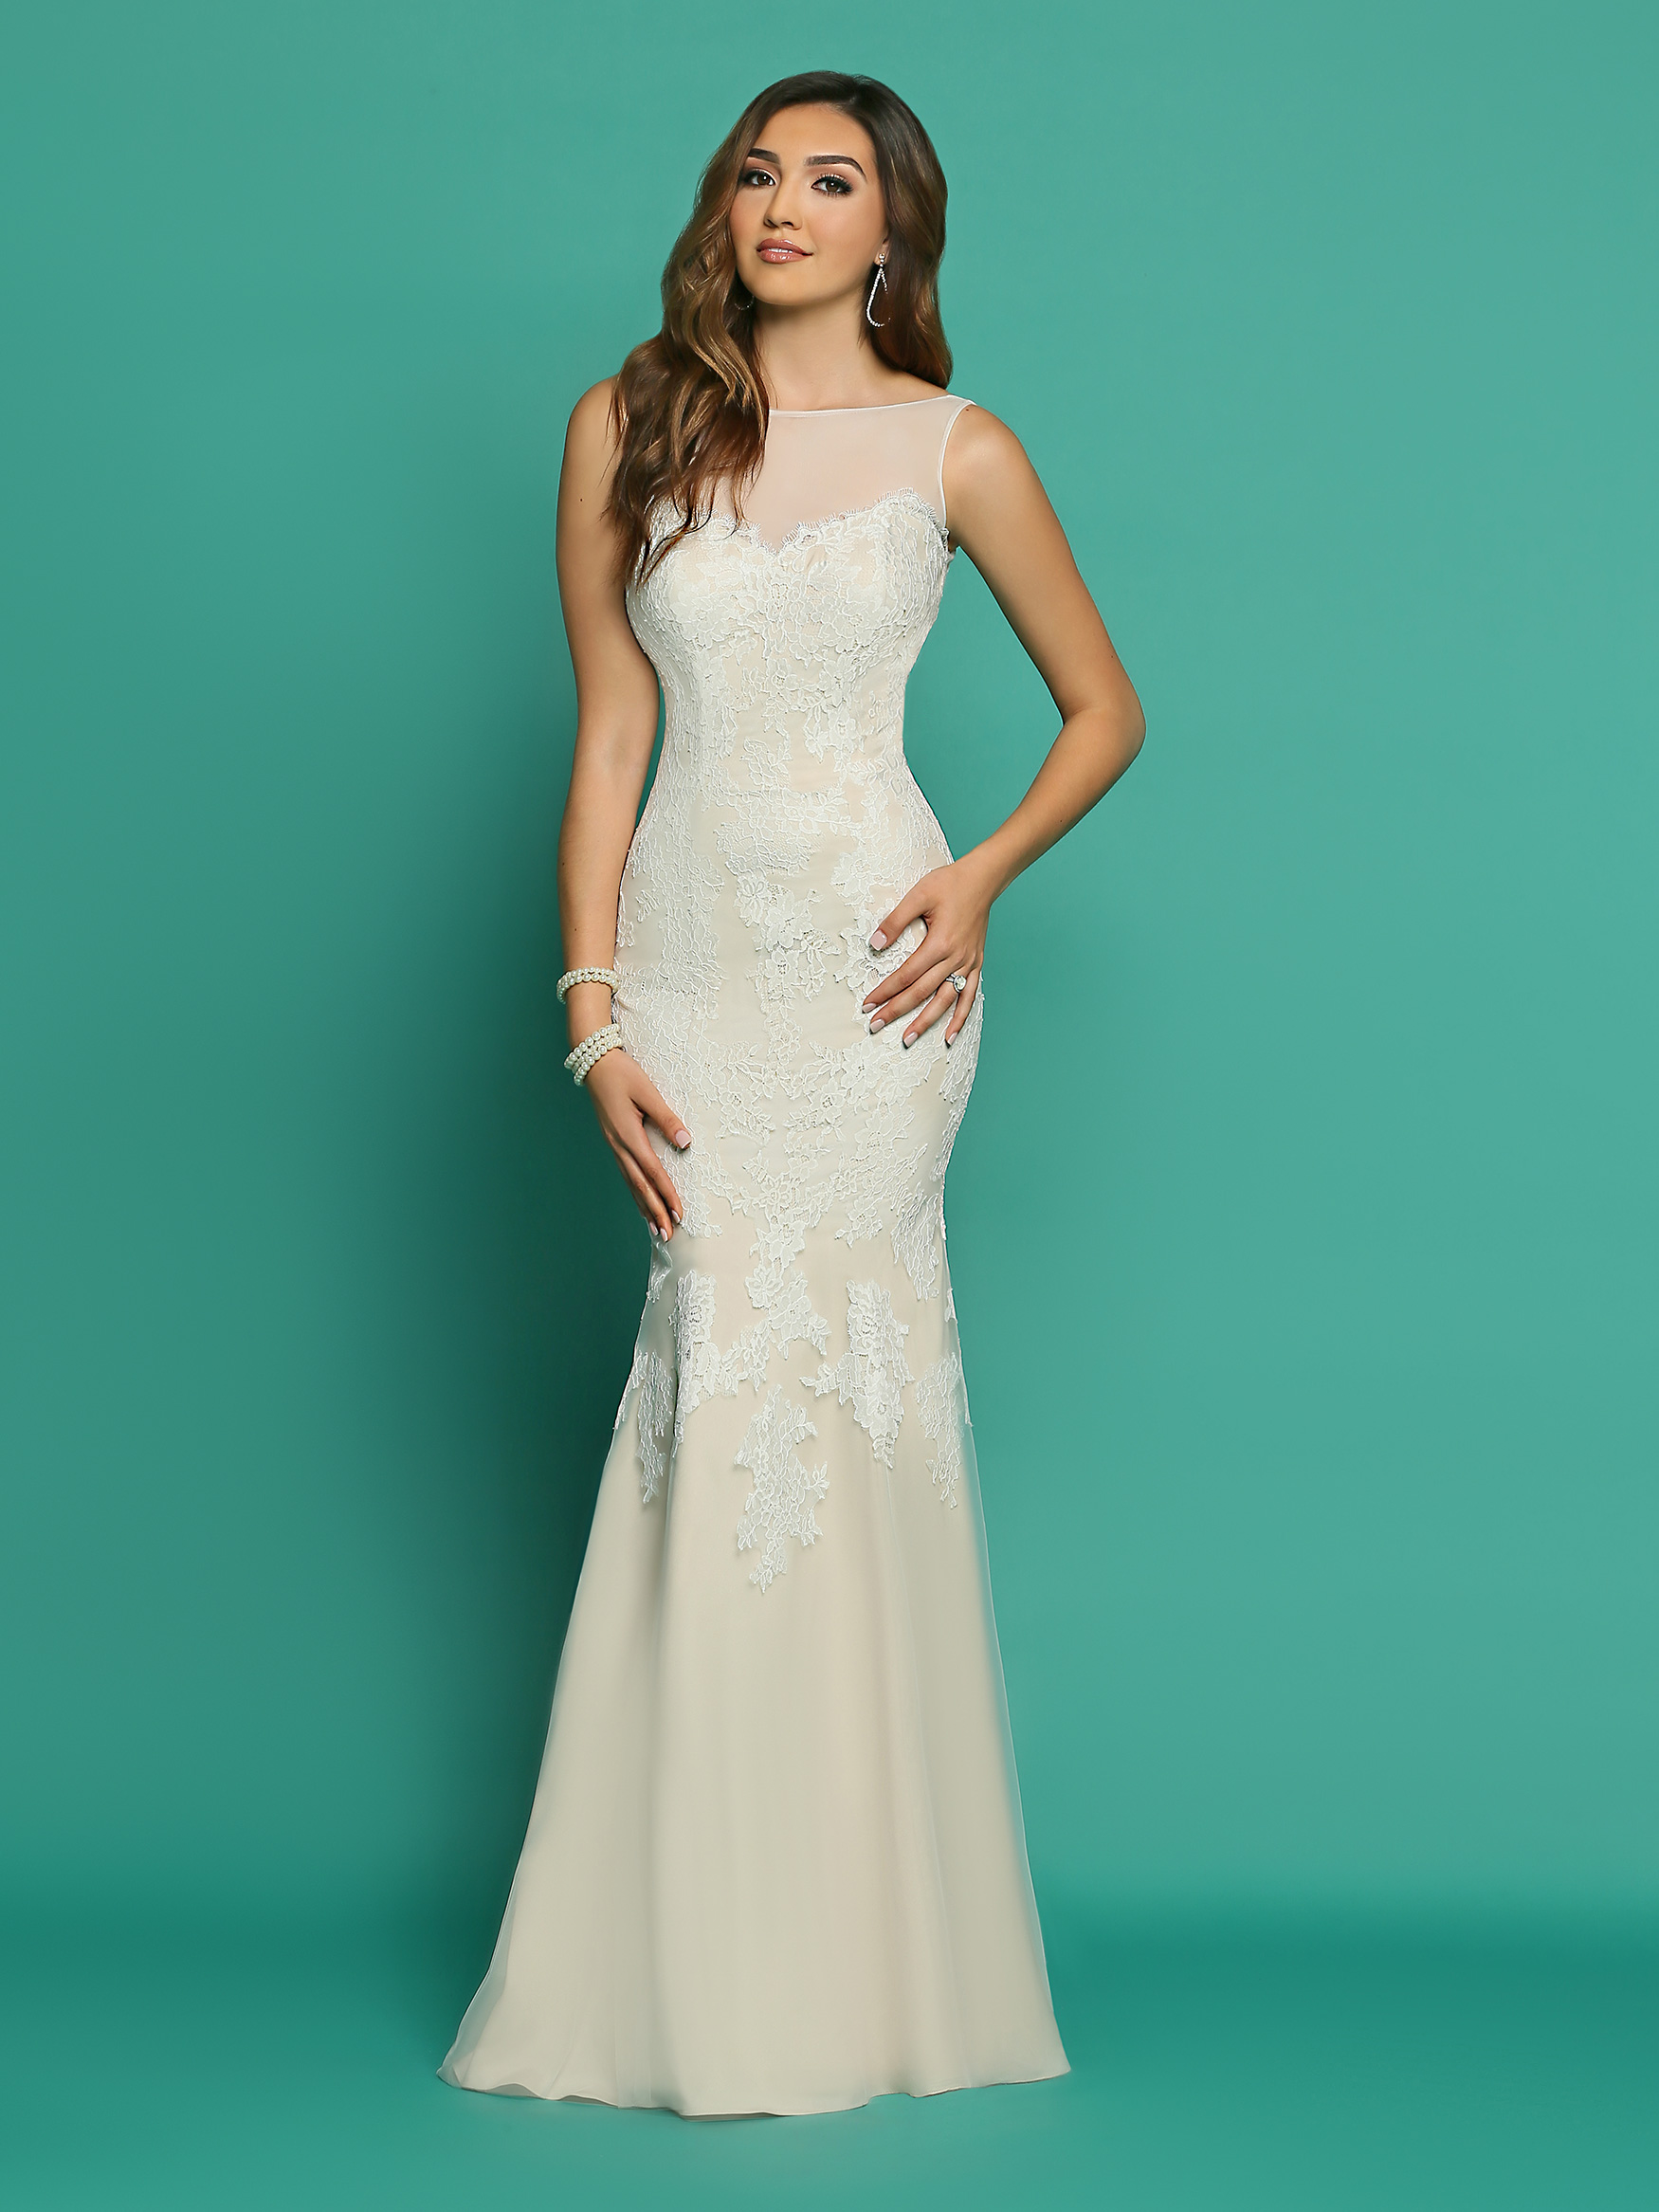 Some brief guidance for casual wedding dresses for women